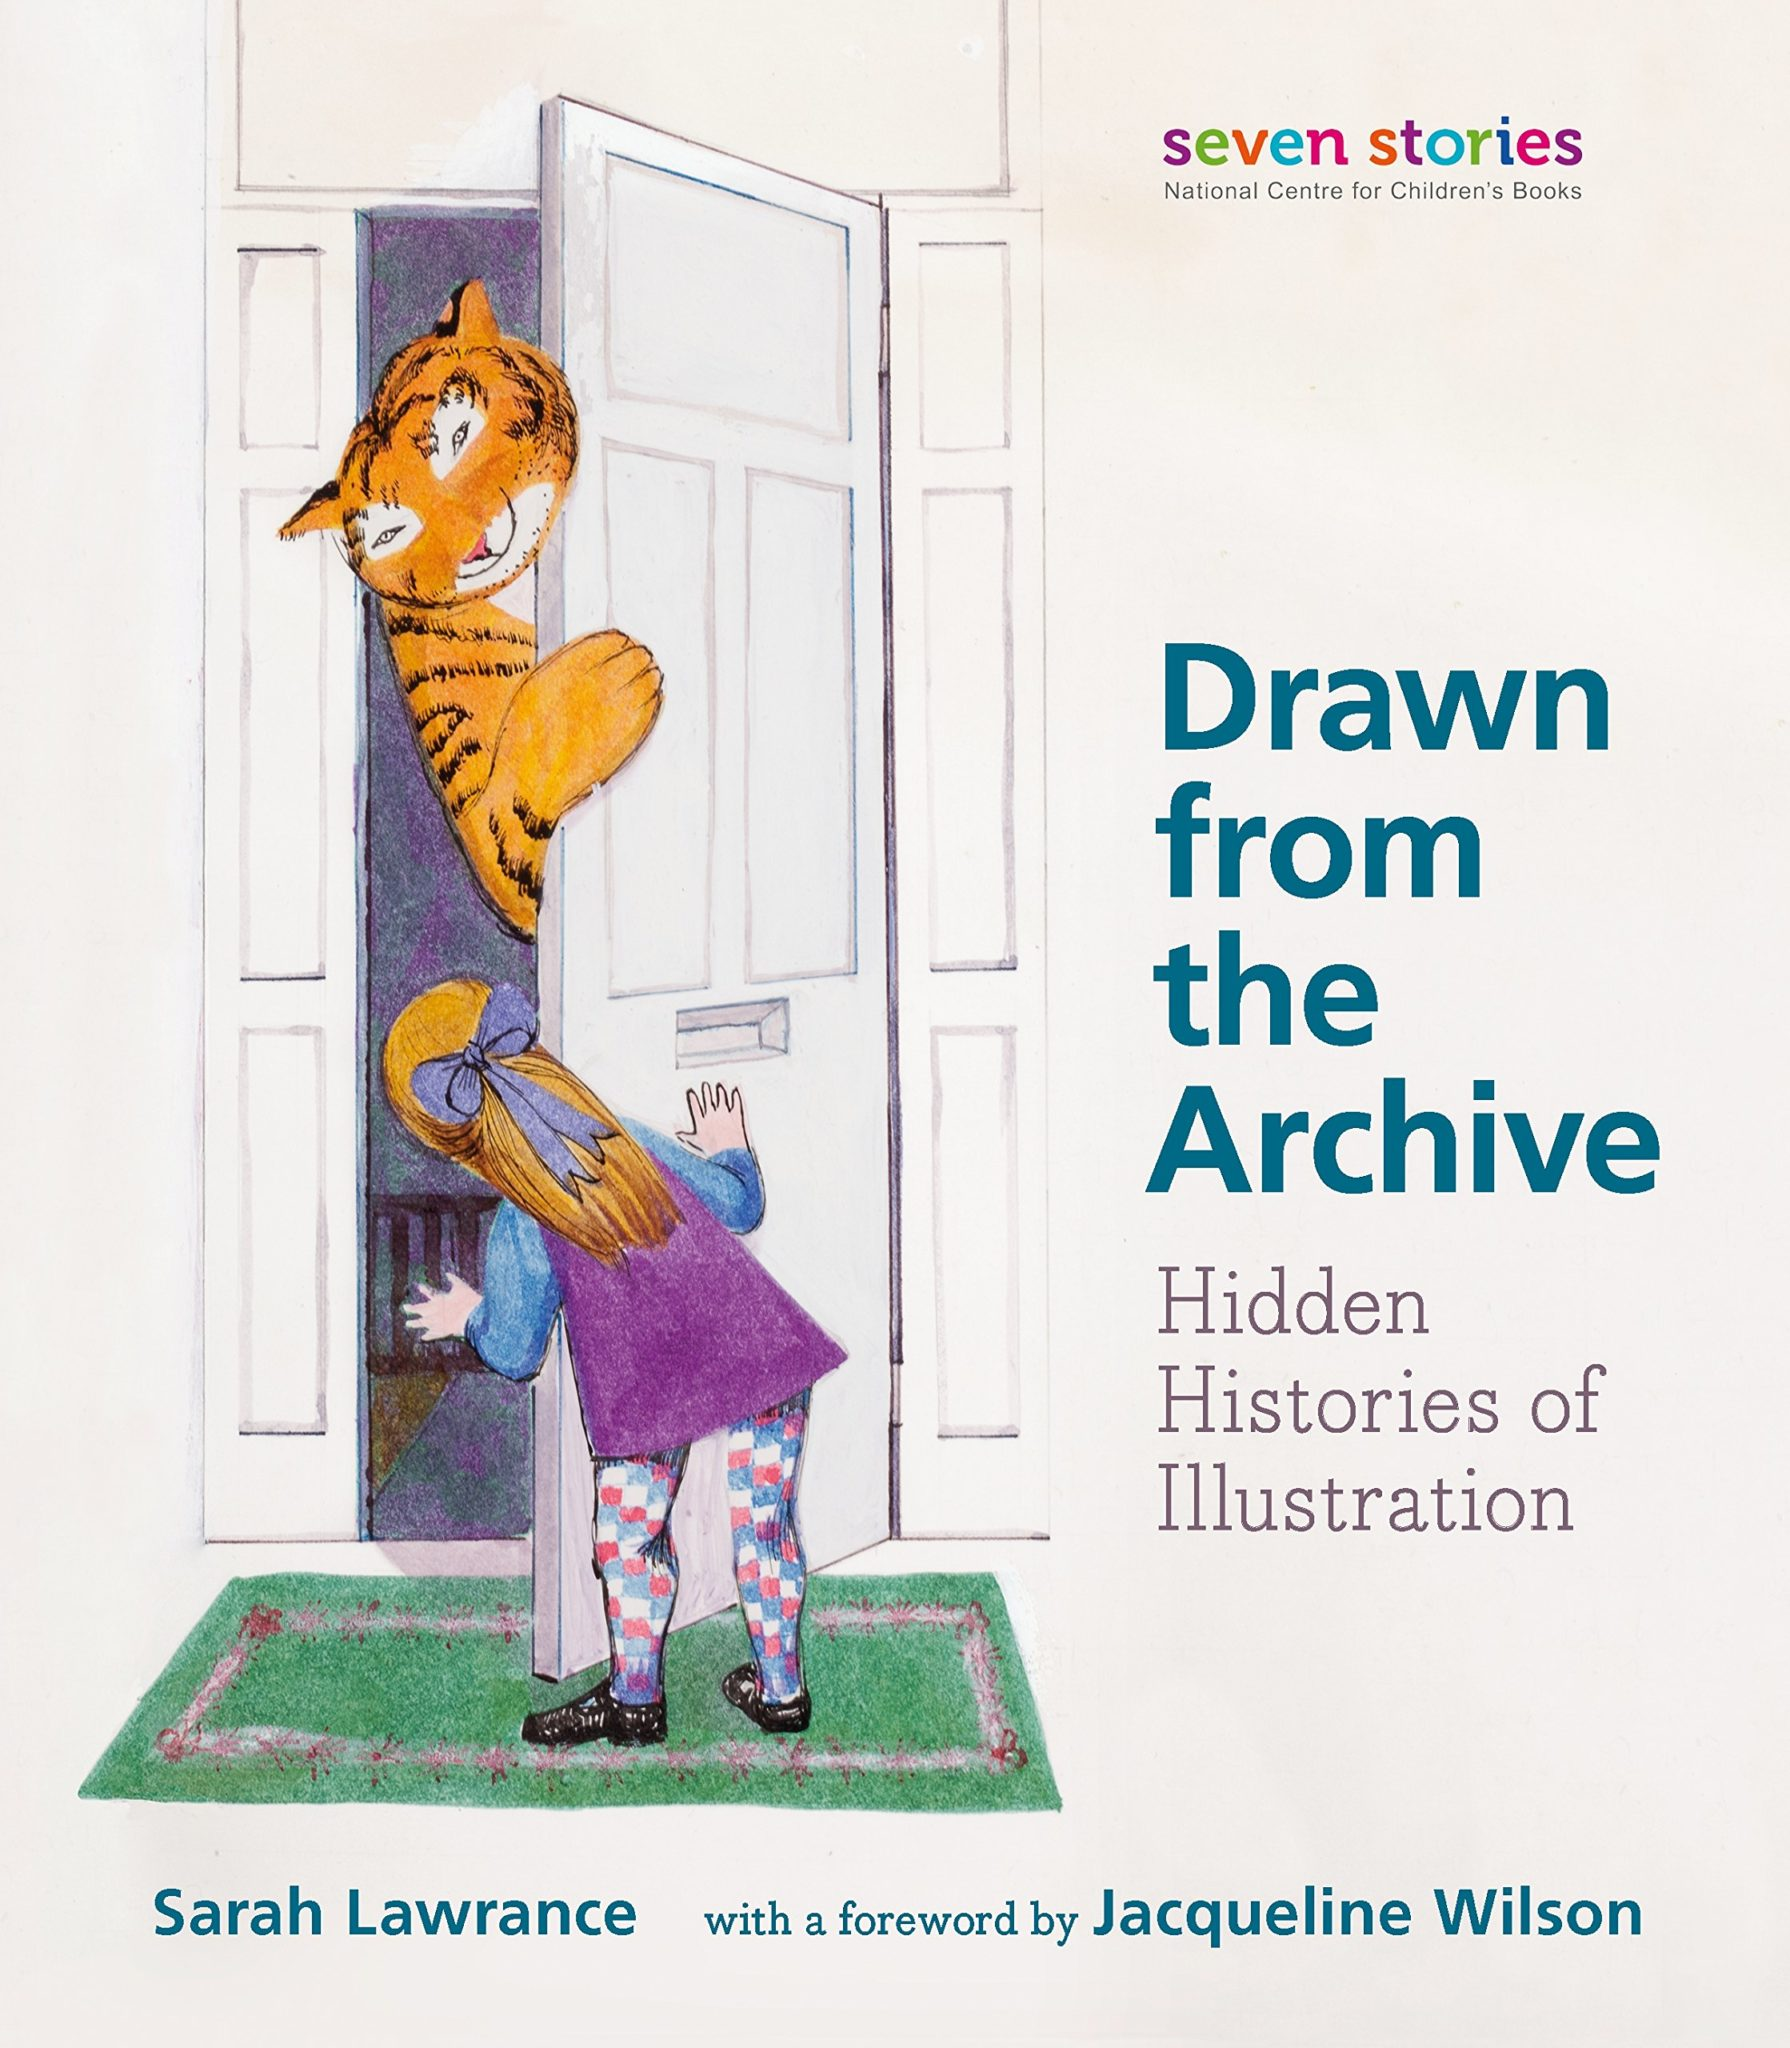 Drawn from the Archive: Hidden Histories of Illustration